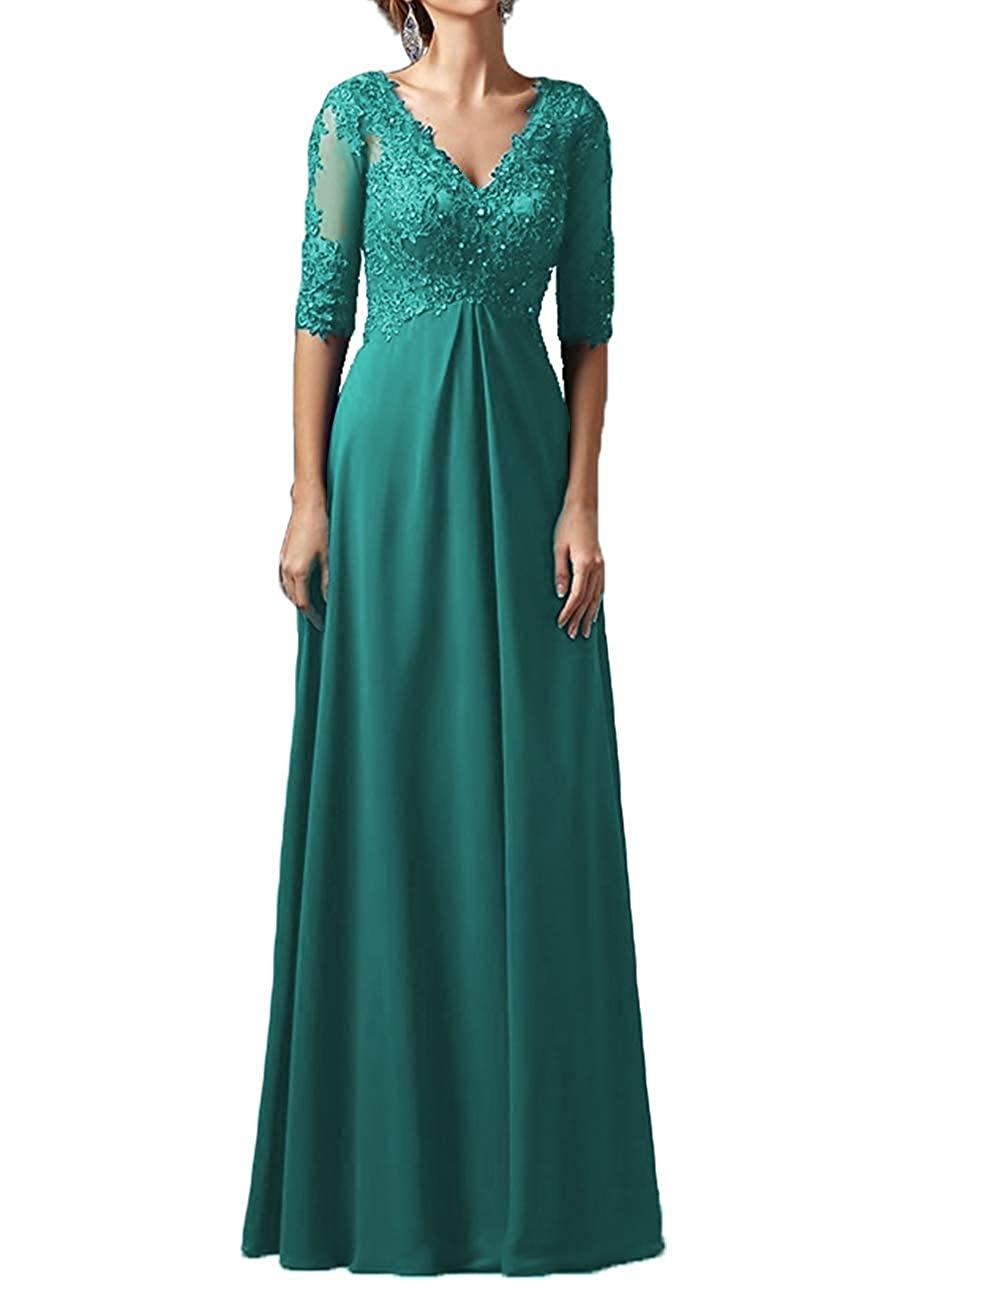 Peacock Mother Dress Long Sleeves V Neck Plus Size Mother of The Bride Dress Formal Party Evening Gowns